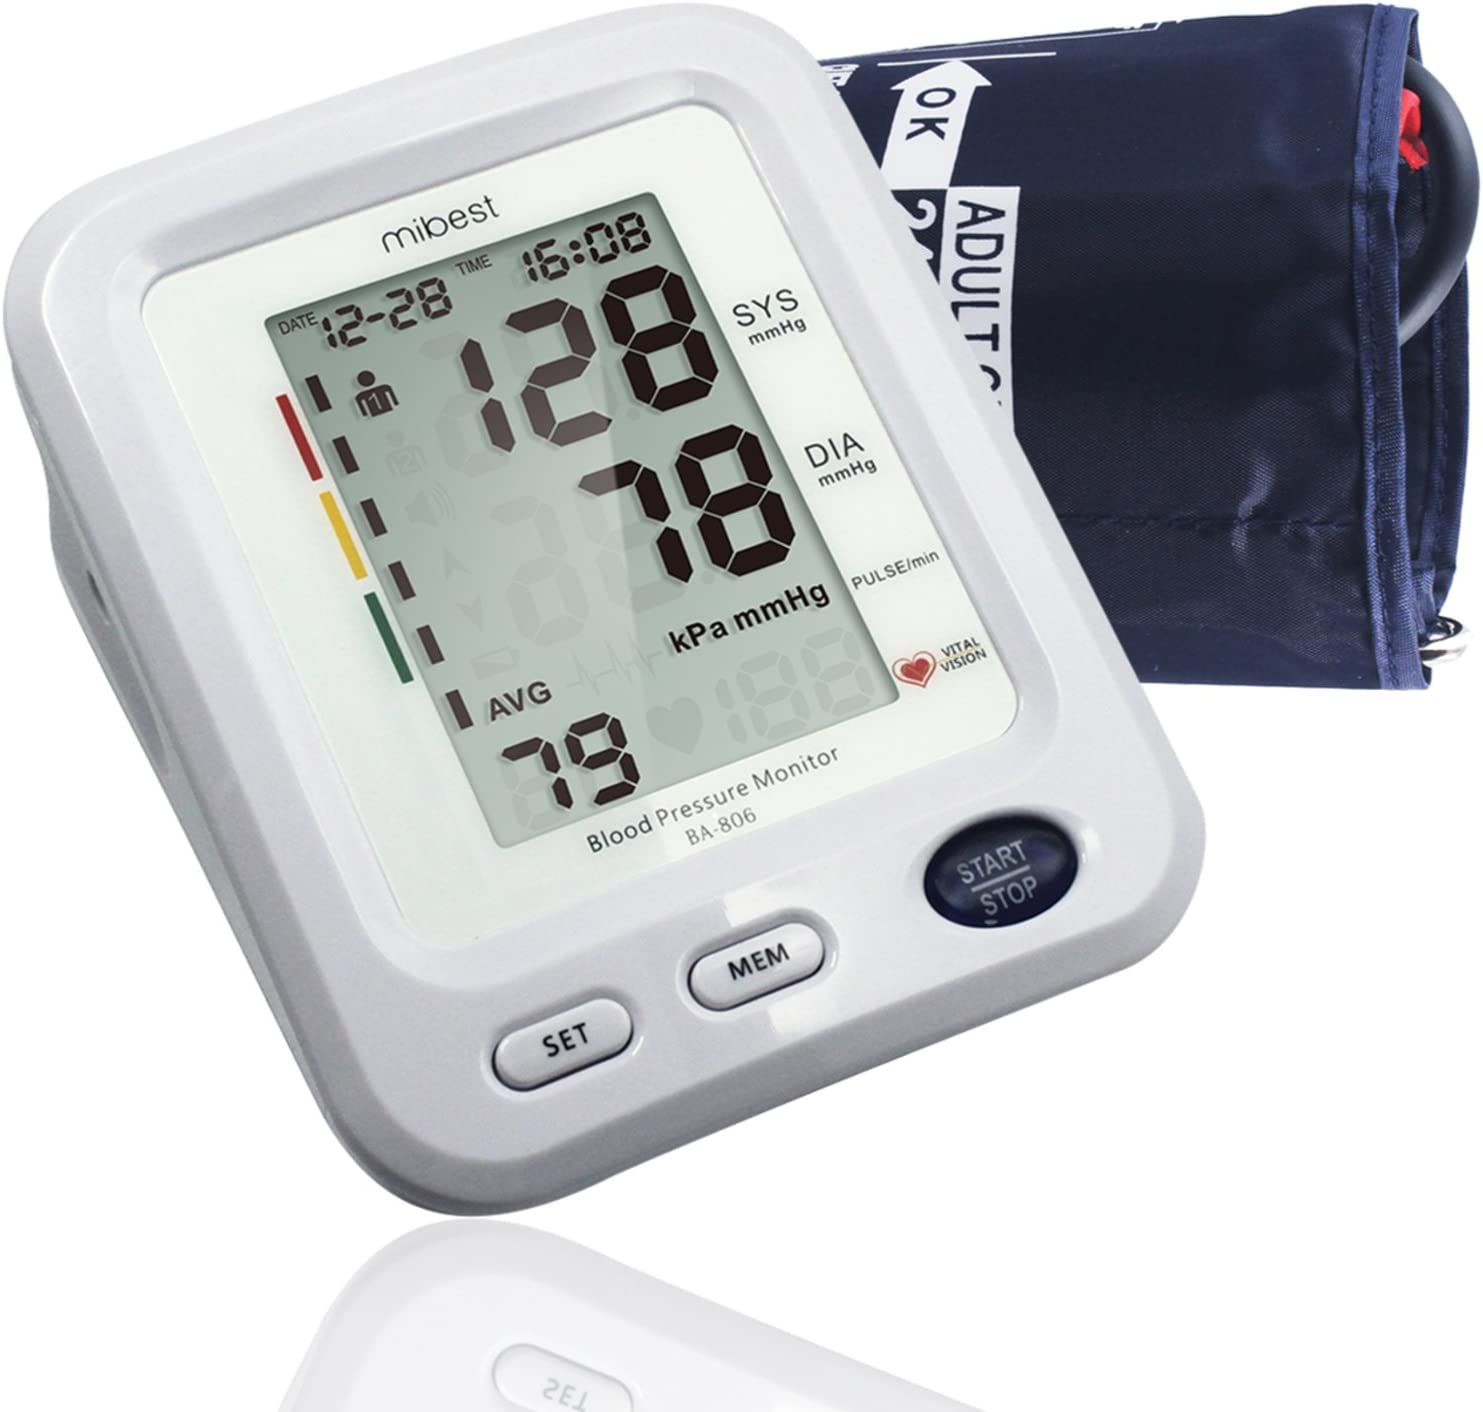 MIBEST Digital Blood Pressure Monitor – BP Cuff Meter with Display -Standard Size Blood Pressure Machine 9.4-13.4 – Blood Pressure Tester with C.E. FDA Certificates – Blood Pressure Gauge with Memory